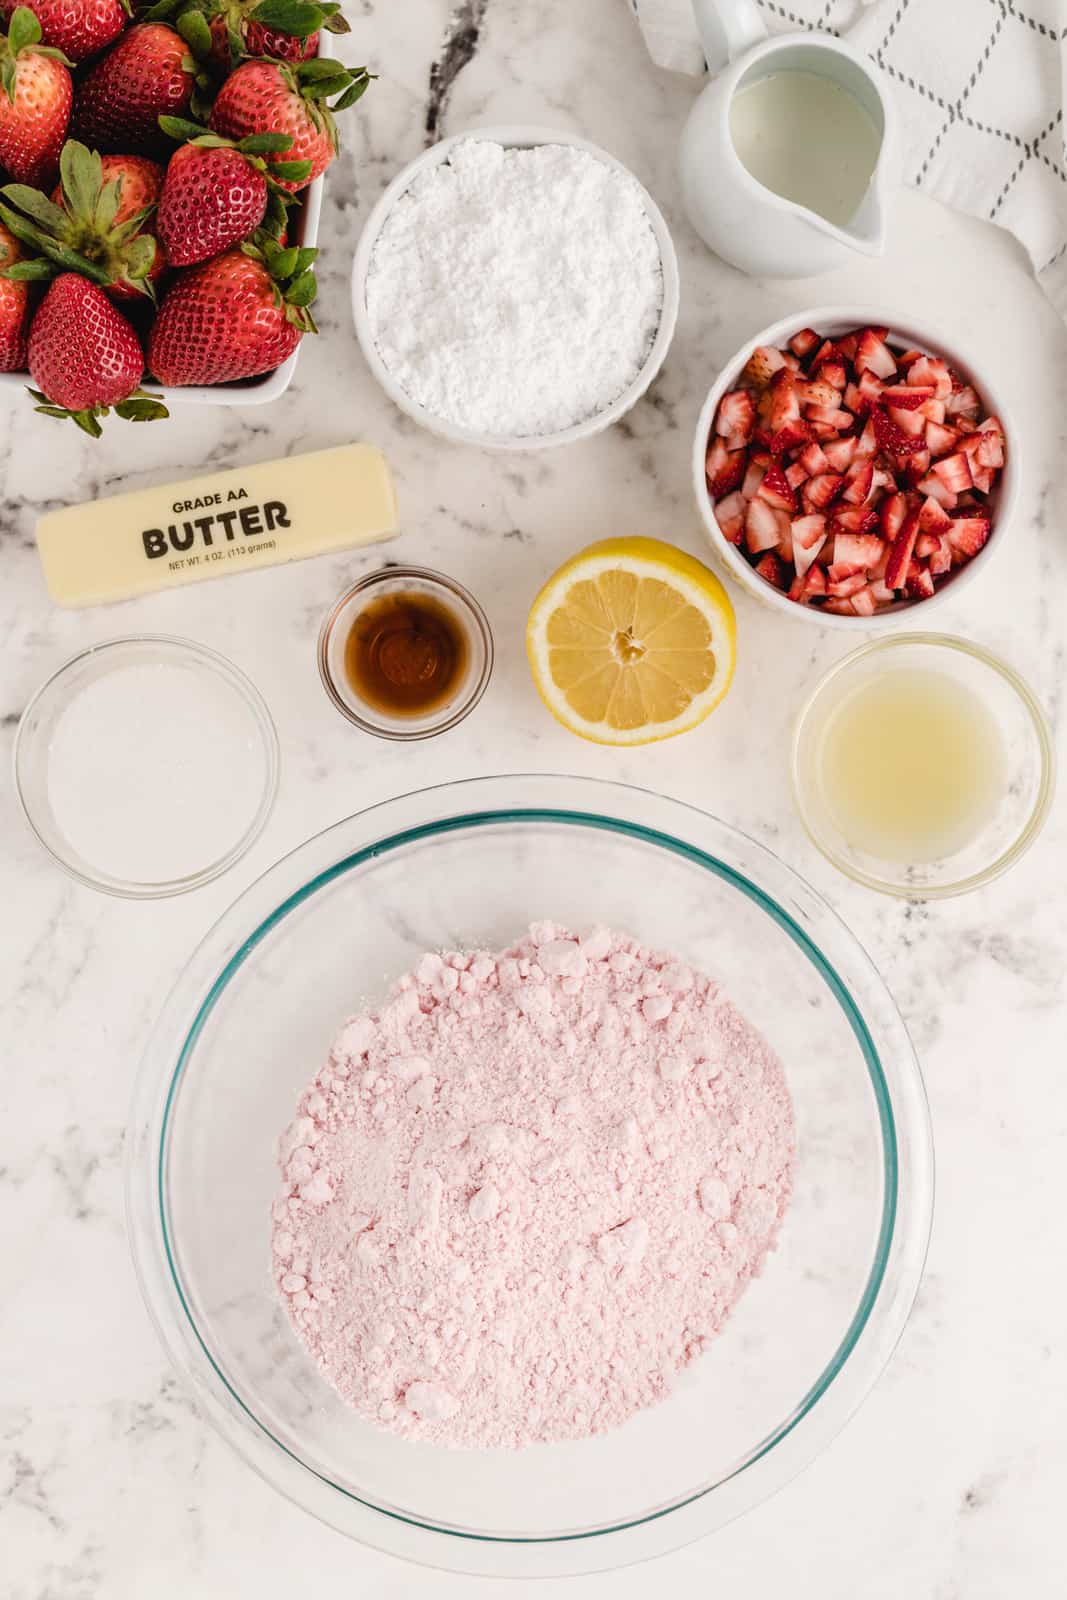 Ingredients needed to make Strawberry Cupcakes